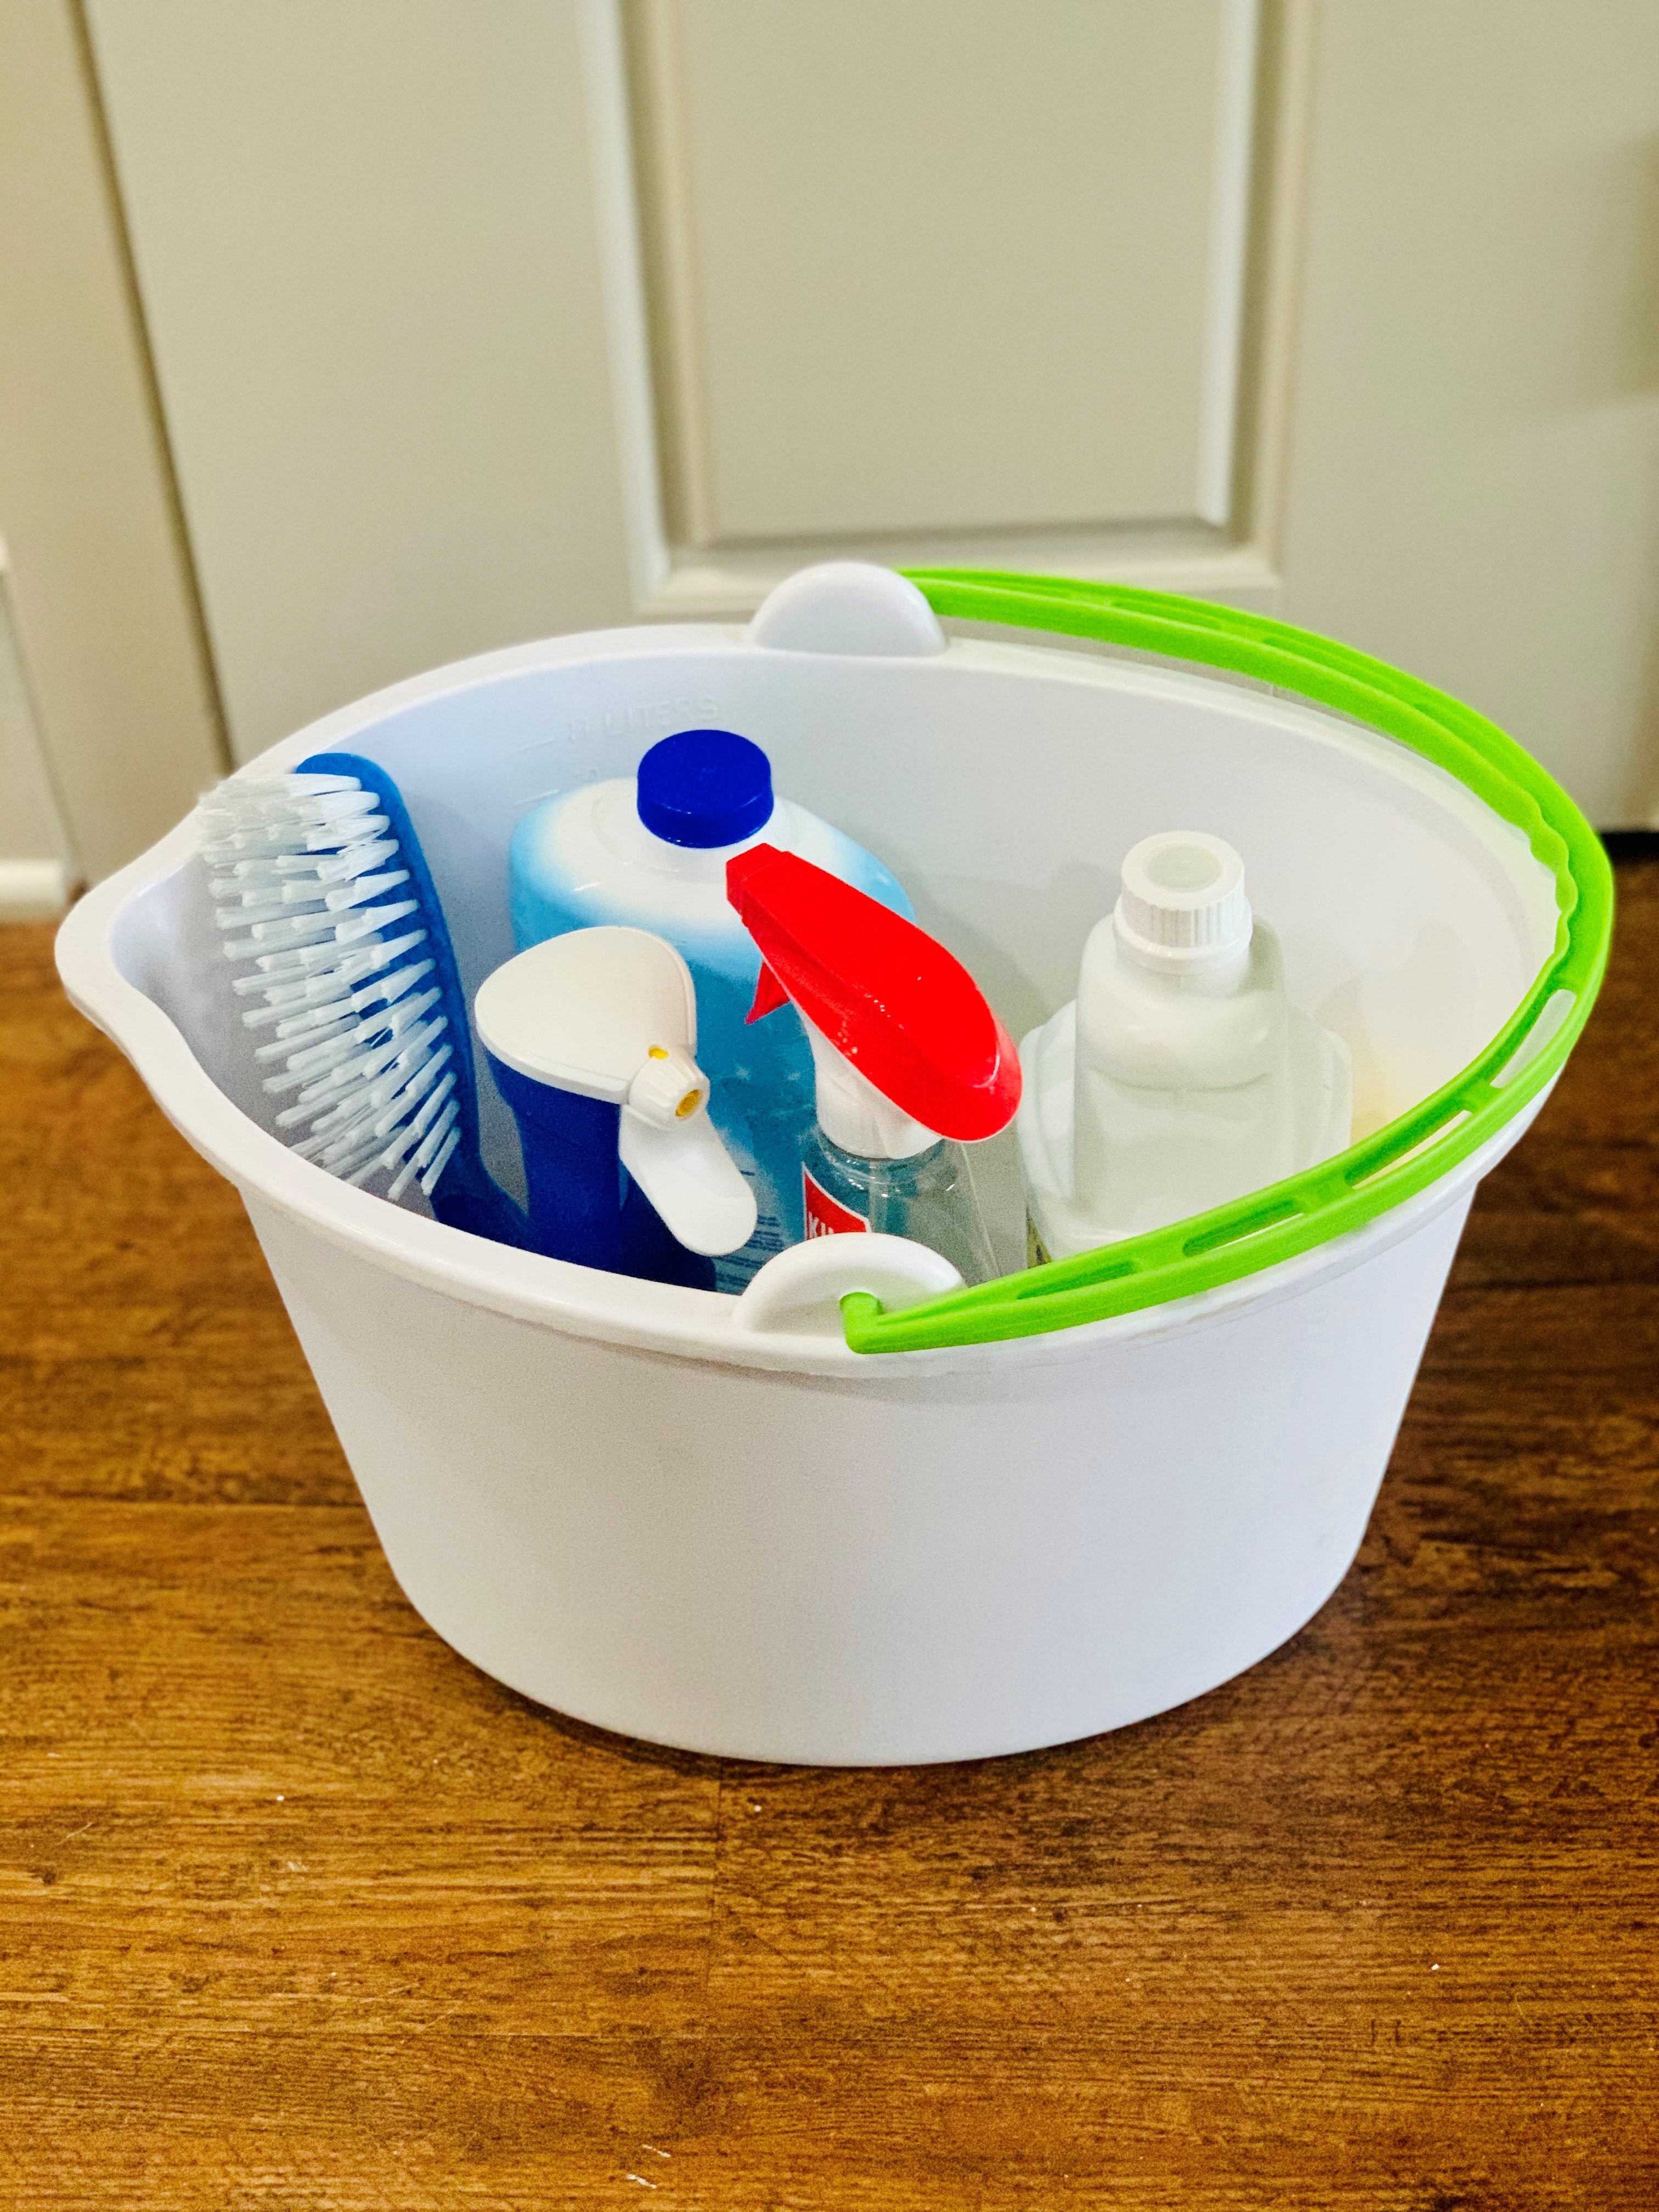 Cleaning products stored in a mop bucket